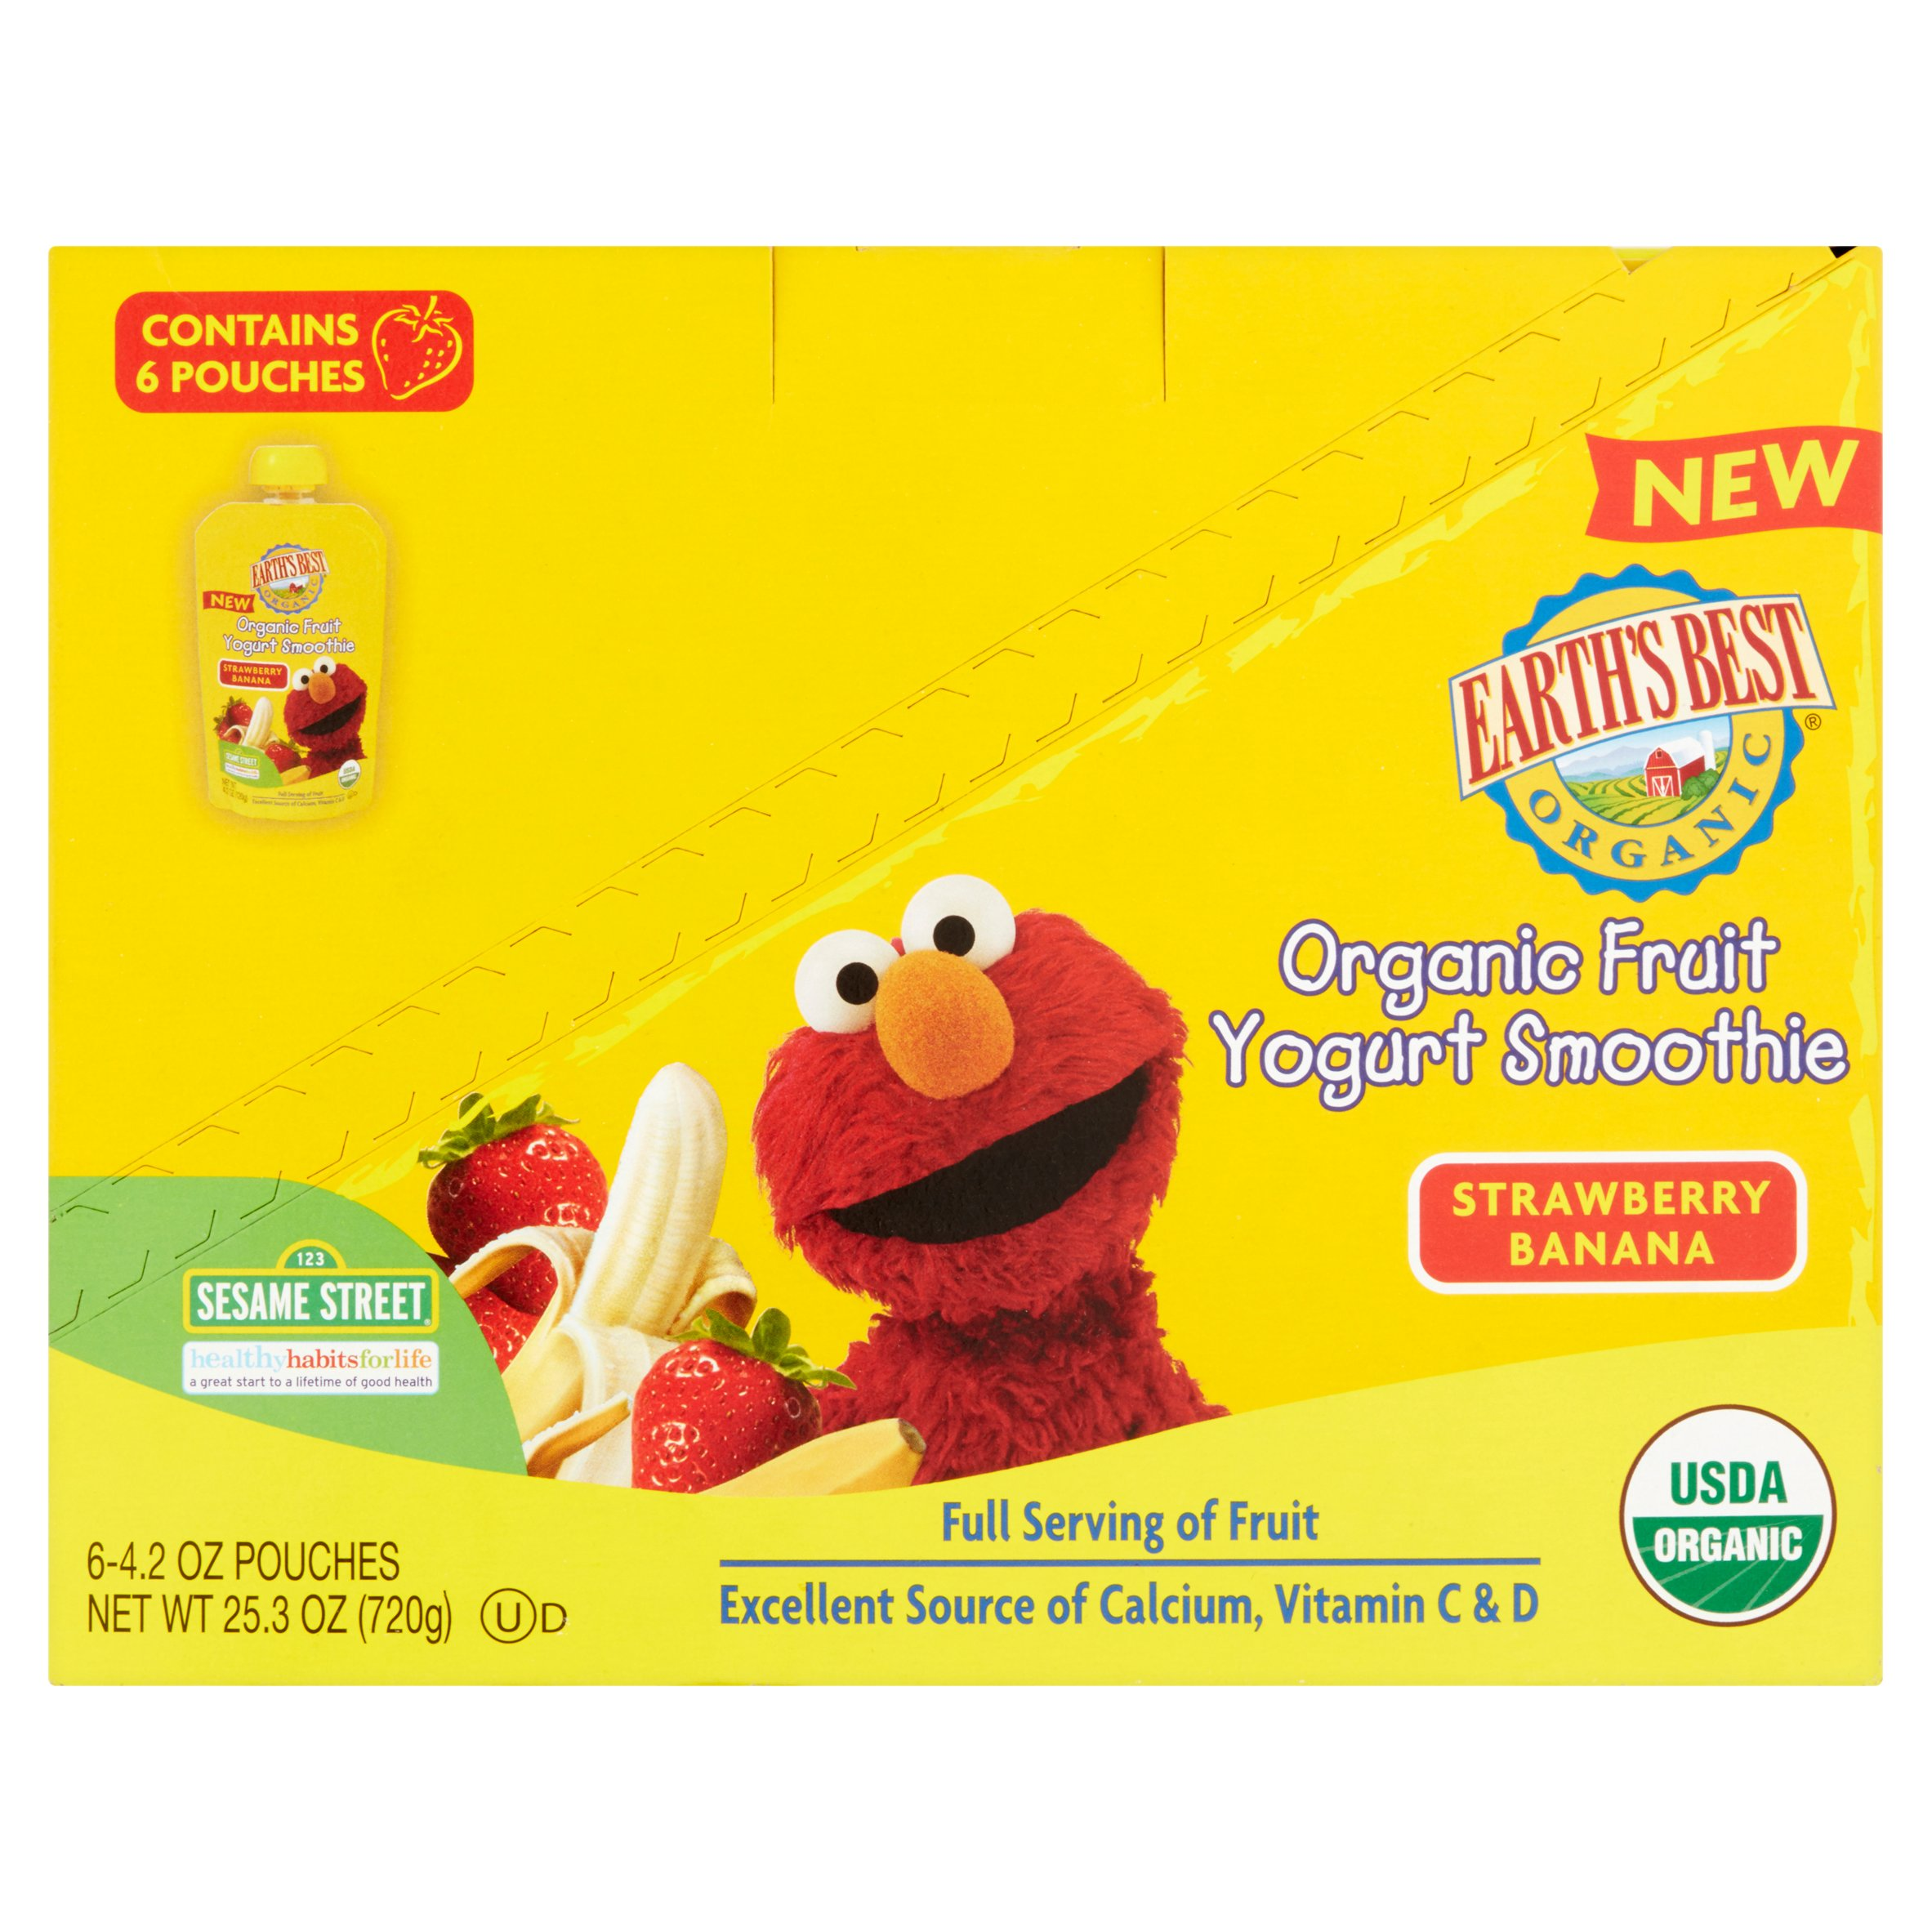 Earth's Best Organic Sesame Street Strawberry Banana Fruit Yogurt Smoothie, 4.2 oz, (Pack of 6)